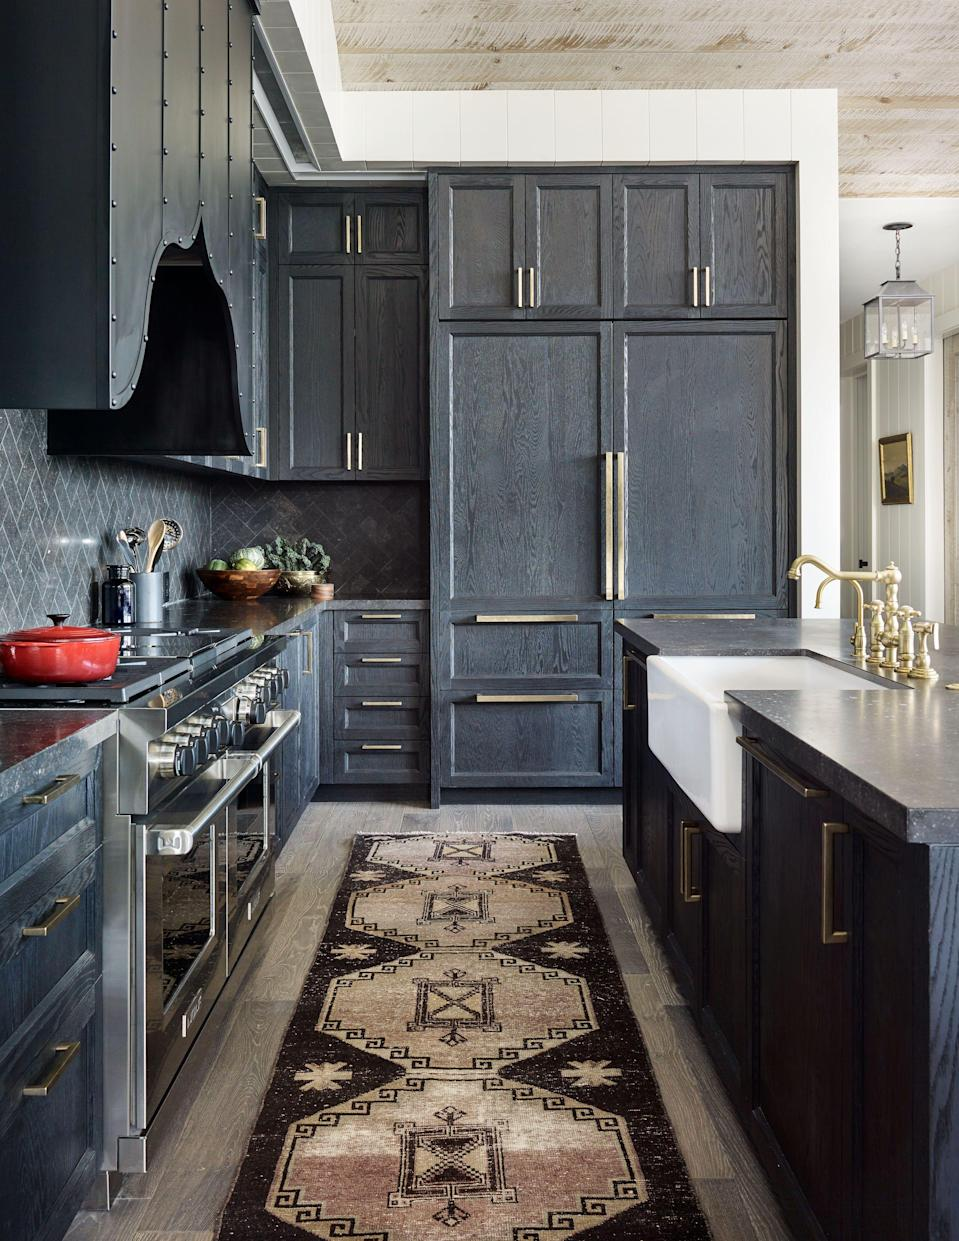 "<p>There's a lot to consider when designing and decorating a kitchen, from <a href=""https://www.veranda.com/decorating-ideas/g35091957/kitchen-cabinet-ideas/"" rel=""nofollow noopener"" target=""_blank"" data-ylk=""slk:cabinet designs"" class=""link rapid-noclick-resp"">cabinet designs</a> and <a href=""https://www.veranda.com/decorating-ideas/g35055952/kitchen-backsplash-ideas/"" rel=""nofollow noopener"" target=""_blank"" data-ylk=""slk:backsplash ideas"" class=""link rapid-noclick-resp"">backsplash ideas</a> to <a href=""https://www.veranda.com/home-decorators/g35129421/kitchen-lighting-ideas/"" rel=""nofollow noopener"" target=""_blank"" data-ylk=""slk:lighting"" class=""link rapid-noclick-resp"">lighting</a> and <a href=""https://www.veranda.com/decorating-ideas/g1625/kitchen-island/"" rel=""nofollow noopener"" target=""_blank"" data-ylk=""slk:islands"" class=""link rapid-noclick-resp"">islands</a>. And while flooring is just as important as selection, it's not always the most fun part of kitchen decor—and comfort and style underfoot may get overlooked. Whether you choose tile flooring or hardwood flooring for your kitchen, you may want to consider a kitchen rug. </p><p>If the idea of adding an area rug in your kitchen has you wondering about maintenance, fear not. These days, there are so many machine-washable options (many that can even tolerate cleaning with bleach and drying in a drier), and most are made of sustainable textile materials as well. Beyond machine-washable rugs, you'll want to consider those with low pile constructions, such as flatweaves or hair-on-hide rugs, that are easily maintained and cleaned with a broom or vacuum. </p><p>Finally, vintage rugs from dealers on Etsy and other online marketplaces are also great ways to add color and texture in <a href=""https://www.veranda.com/decorating-ideas/color-ideas/g27147074/white-kitchen-ideas/"" rel=""nofollow noopener"" target=""_blank"" data-ylk=""slk:white kitchens"" class=""link rapid-noclick-resp"">white kitchens</a> and <a href=""https://www.veranda.com/decorating-ideas/g34955481/modern-kitchens/"" rel=""nofollow noopener"" target=""_blank"" data-ylk=""slk:modern kitchens"" class=""link rapid-noclick-resp"">modern kitchens</a>. Even <a href=""https://www.veranda.com/decorating-ideas/g34899885/small-kitchens/"" rel=""nofollow noopener"" target=""_blank"" data-ylk=""slk:small kitchens"" class=""link rapid-noclick-resp"">small kitchens</a> may benefit from a rug, such as a mini rug or a runner. And, as with rugs in other rooms in your house, you will want to consider a rug pad to ensure the rug does not slip and for extra cushion and softness underfoot. Step into style with these 15 beautiful kitchen rugs! </p>"